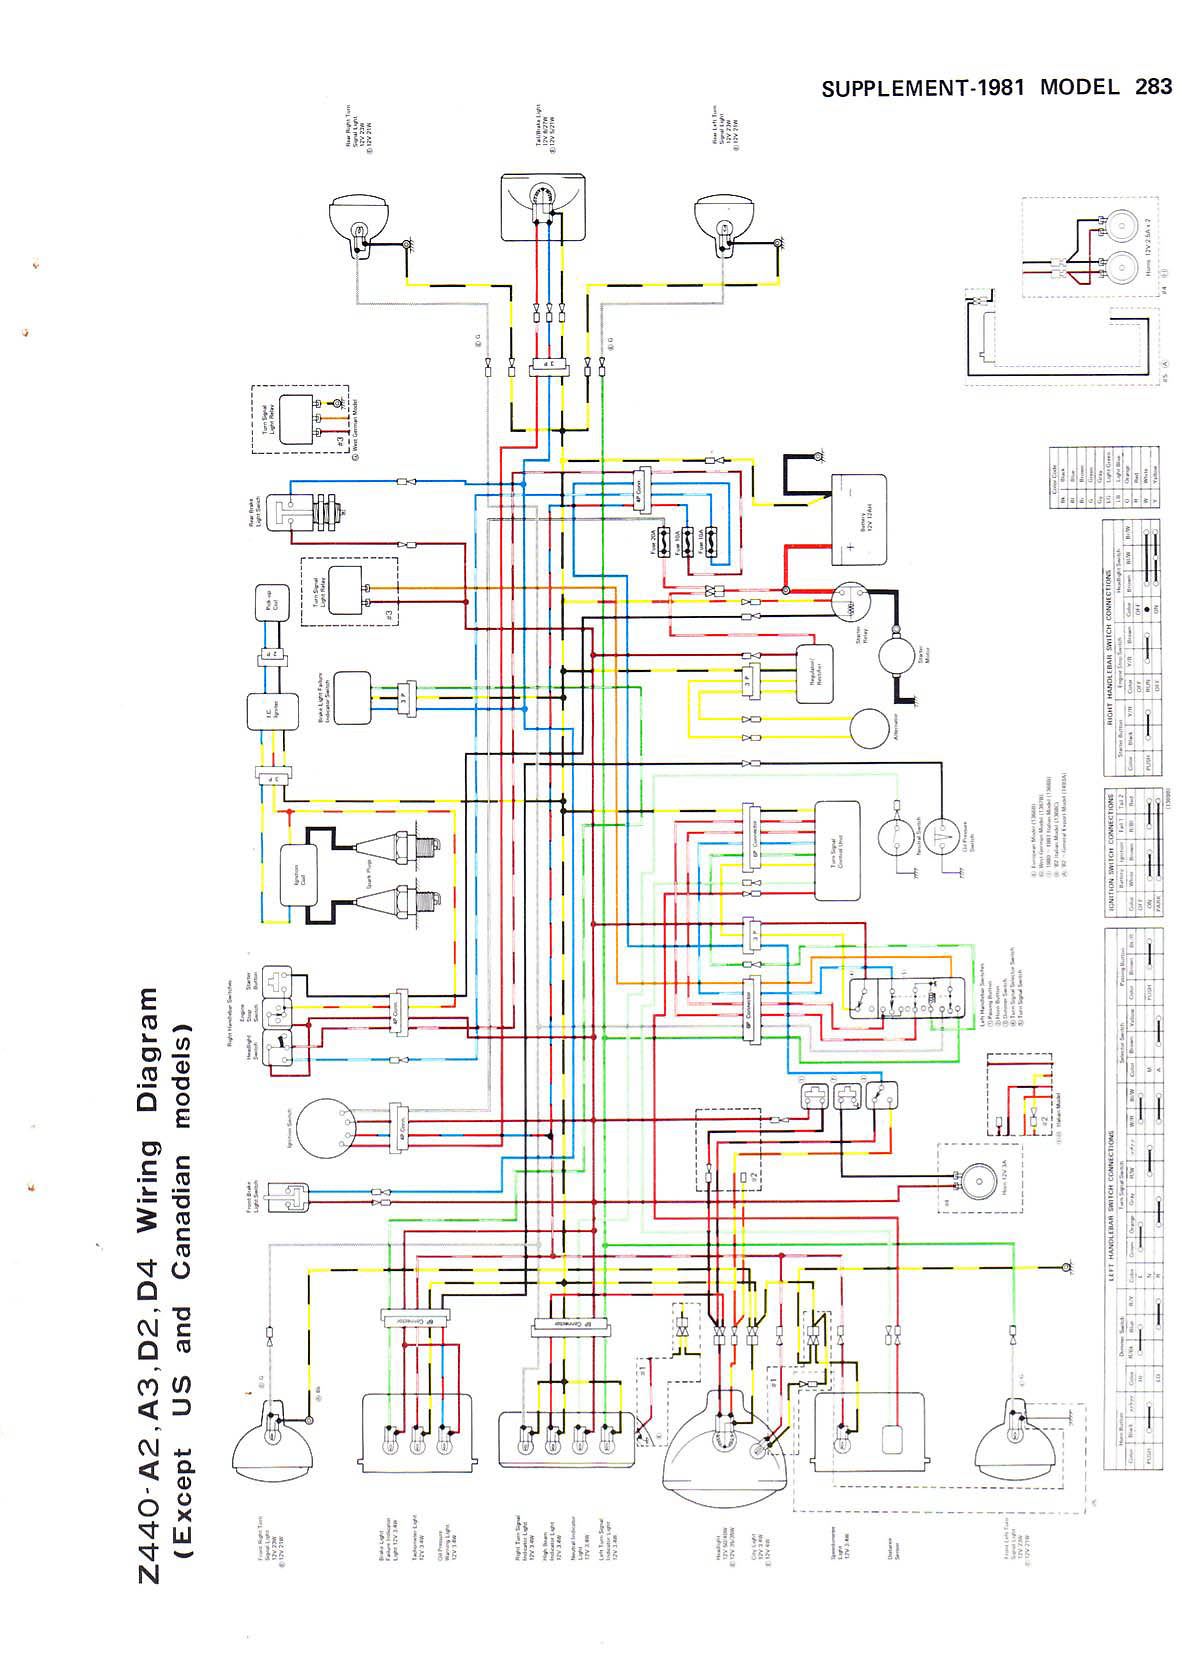 Kawasaki KZ 440 %2780 a %2782 Service Manual_Page_280 index of kz440 wiring diagrams 1981 kawasaki 440 ltd wiring diagram at n-0.co